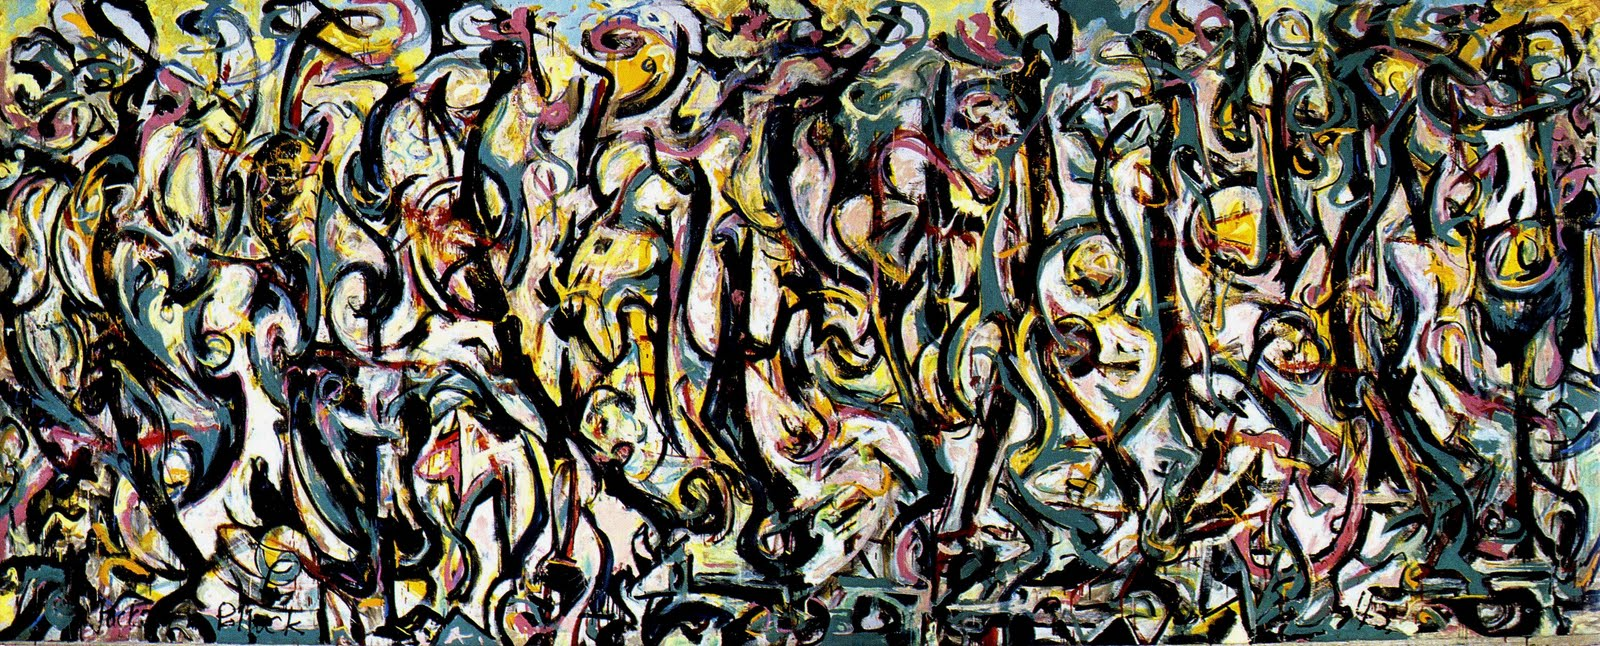 overtime june 25 july 1 arrested motion On mural 1943 by jackson pollock